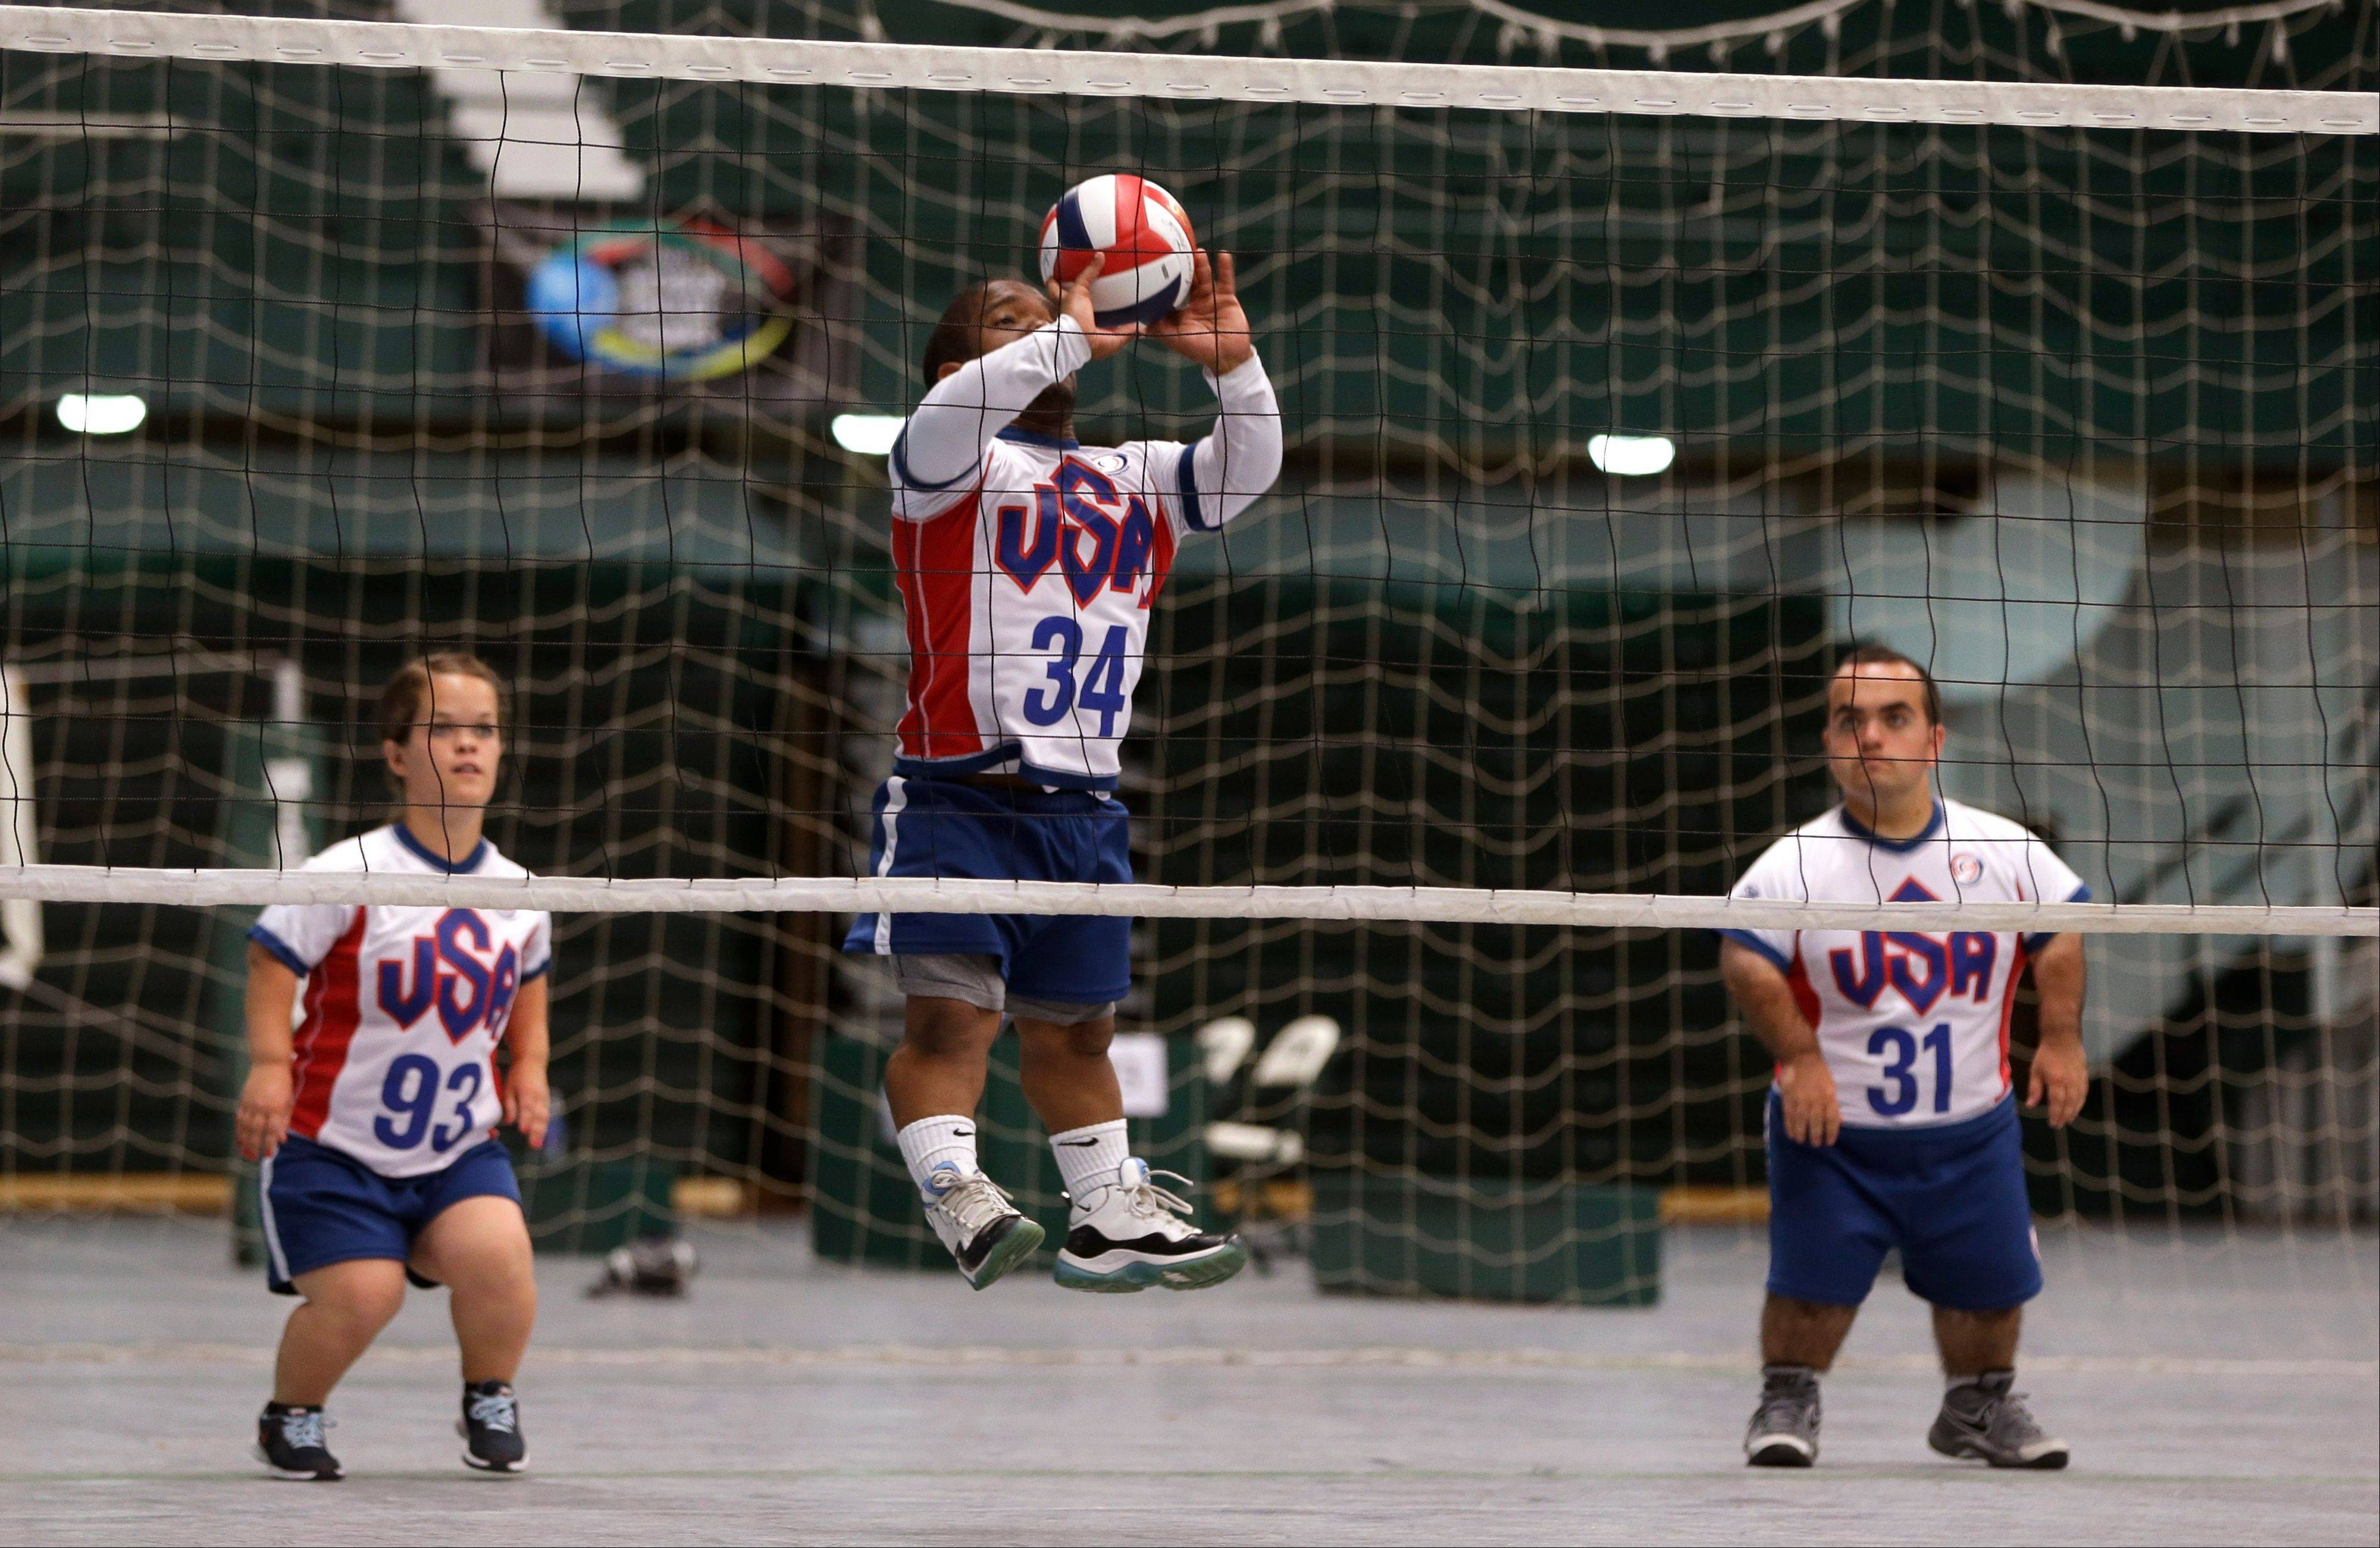 Blaze Foster (34) of the United States team returns a volley Thursday against the European volleyball team during a game at the 2013 World Dwarf Games in East Lansing, Mich.